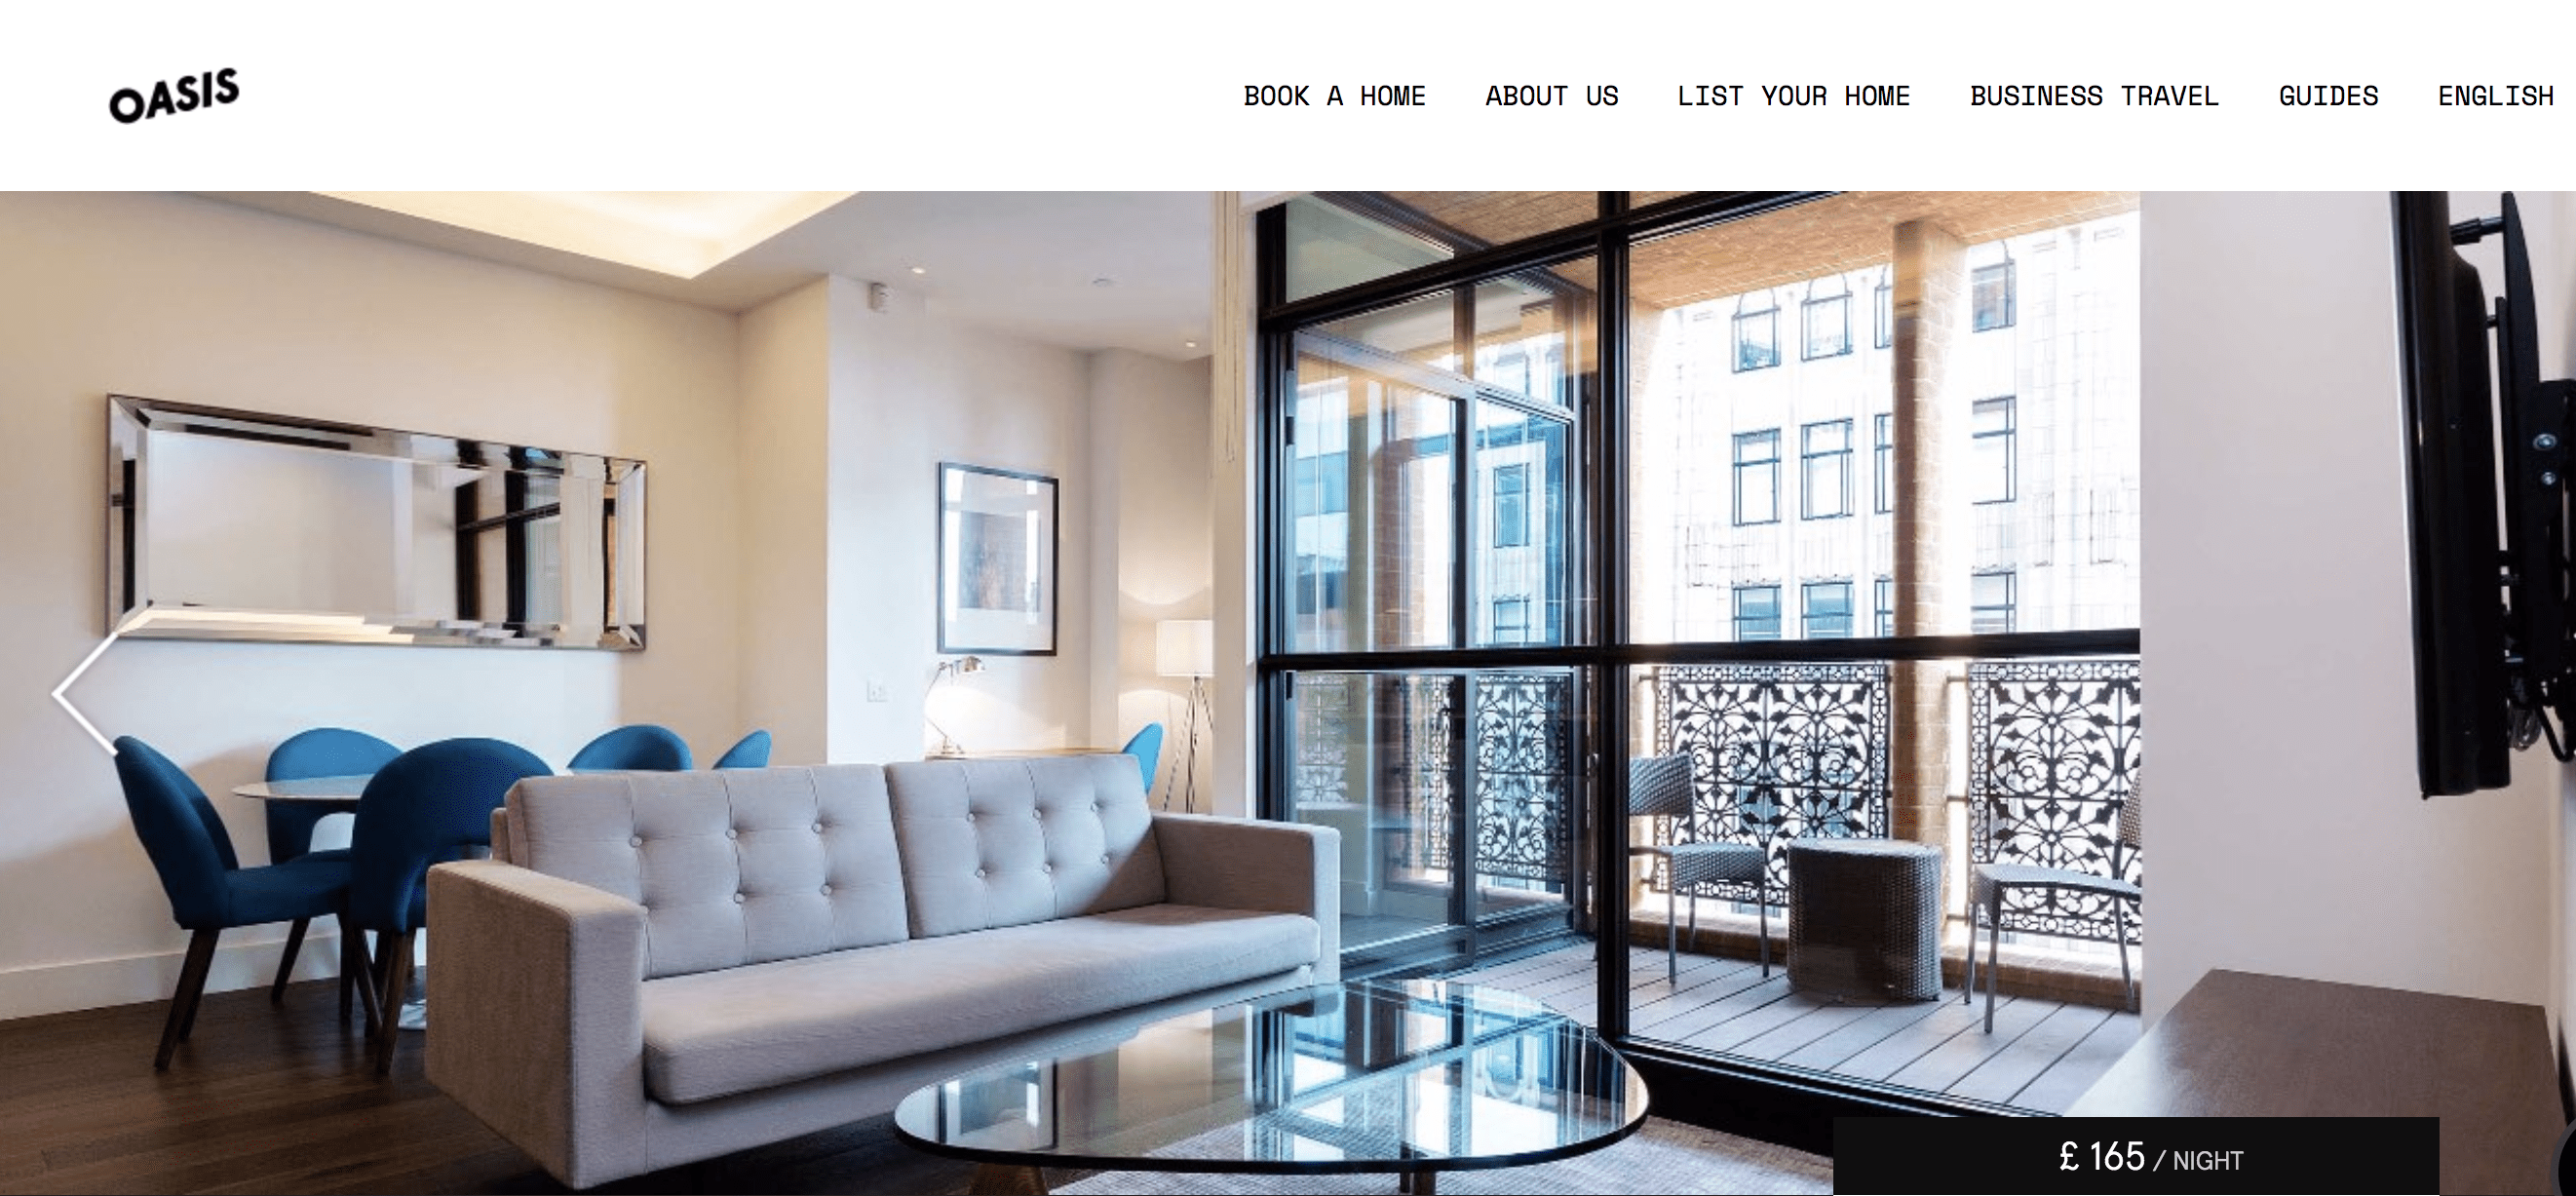 An Oasis Home Rental in London